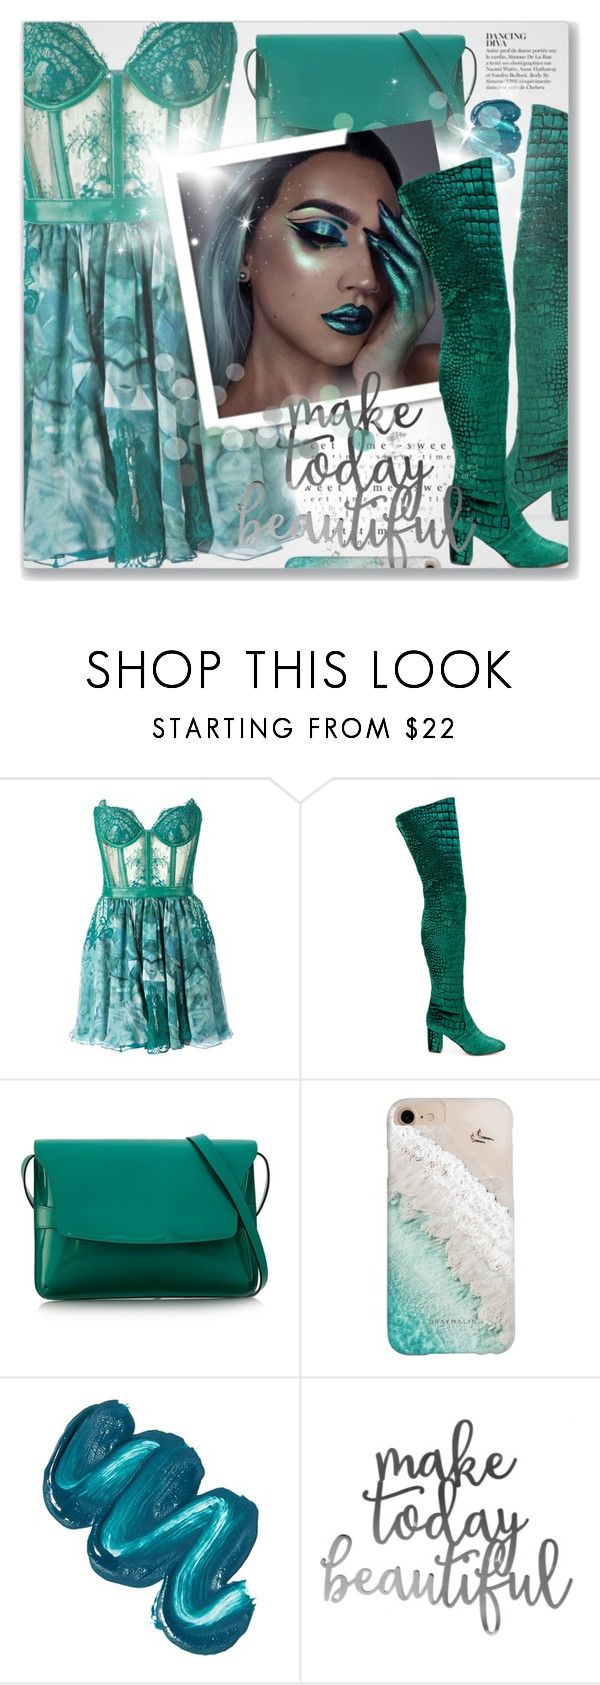 """""""Mayores (feat. Bad Bunny), Becky G"""" by blendasantos ❤ liked on Polyvore featuring Kristian Aadnevik, Jean-Michel Cazabat, Anja, Gucci, Gray Malin, Mermaid Salon, Halloween, halloweencostume, halloweencostumes and halloweenmakeup"""